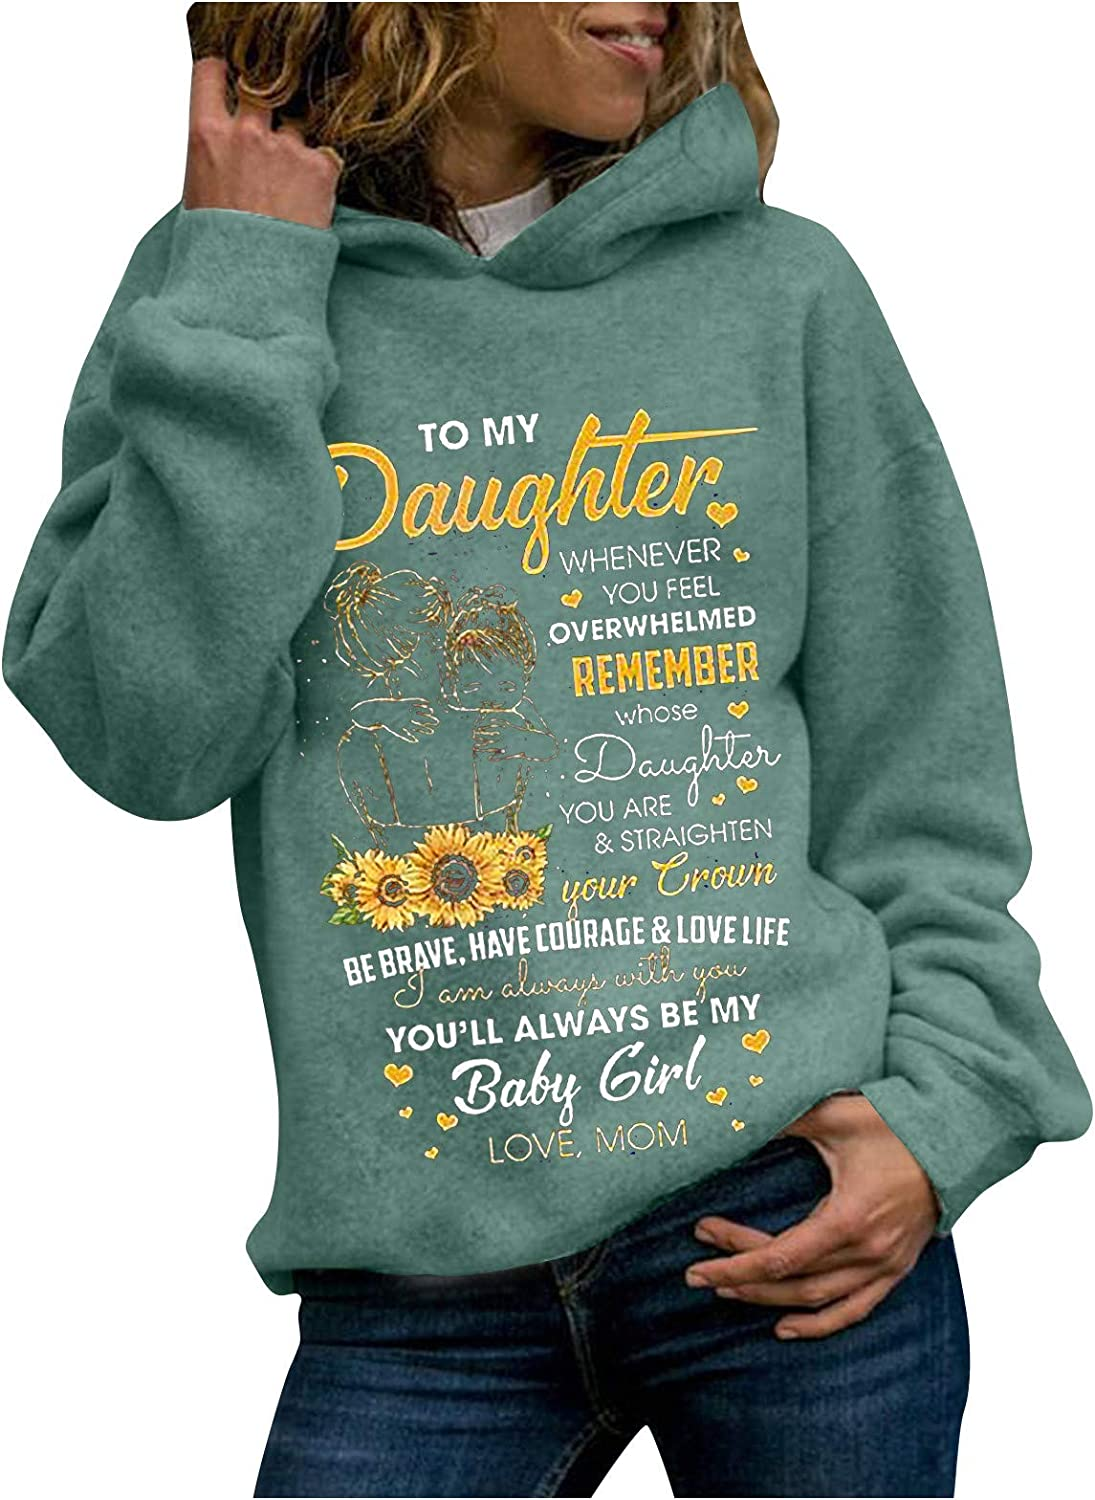 Thanksgiving Day Tops for Women Long Sleeve Hoodies Letters Printed Sweatshirt Teen Girls Comfy Pullover